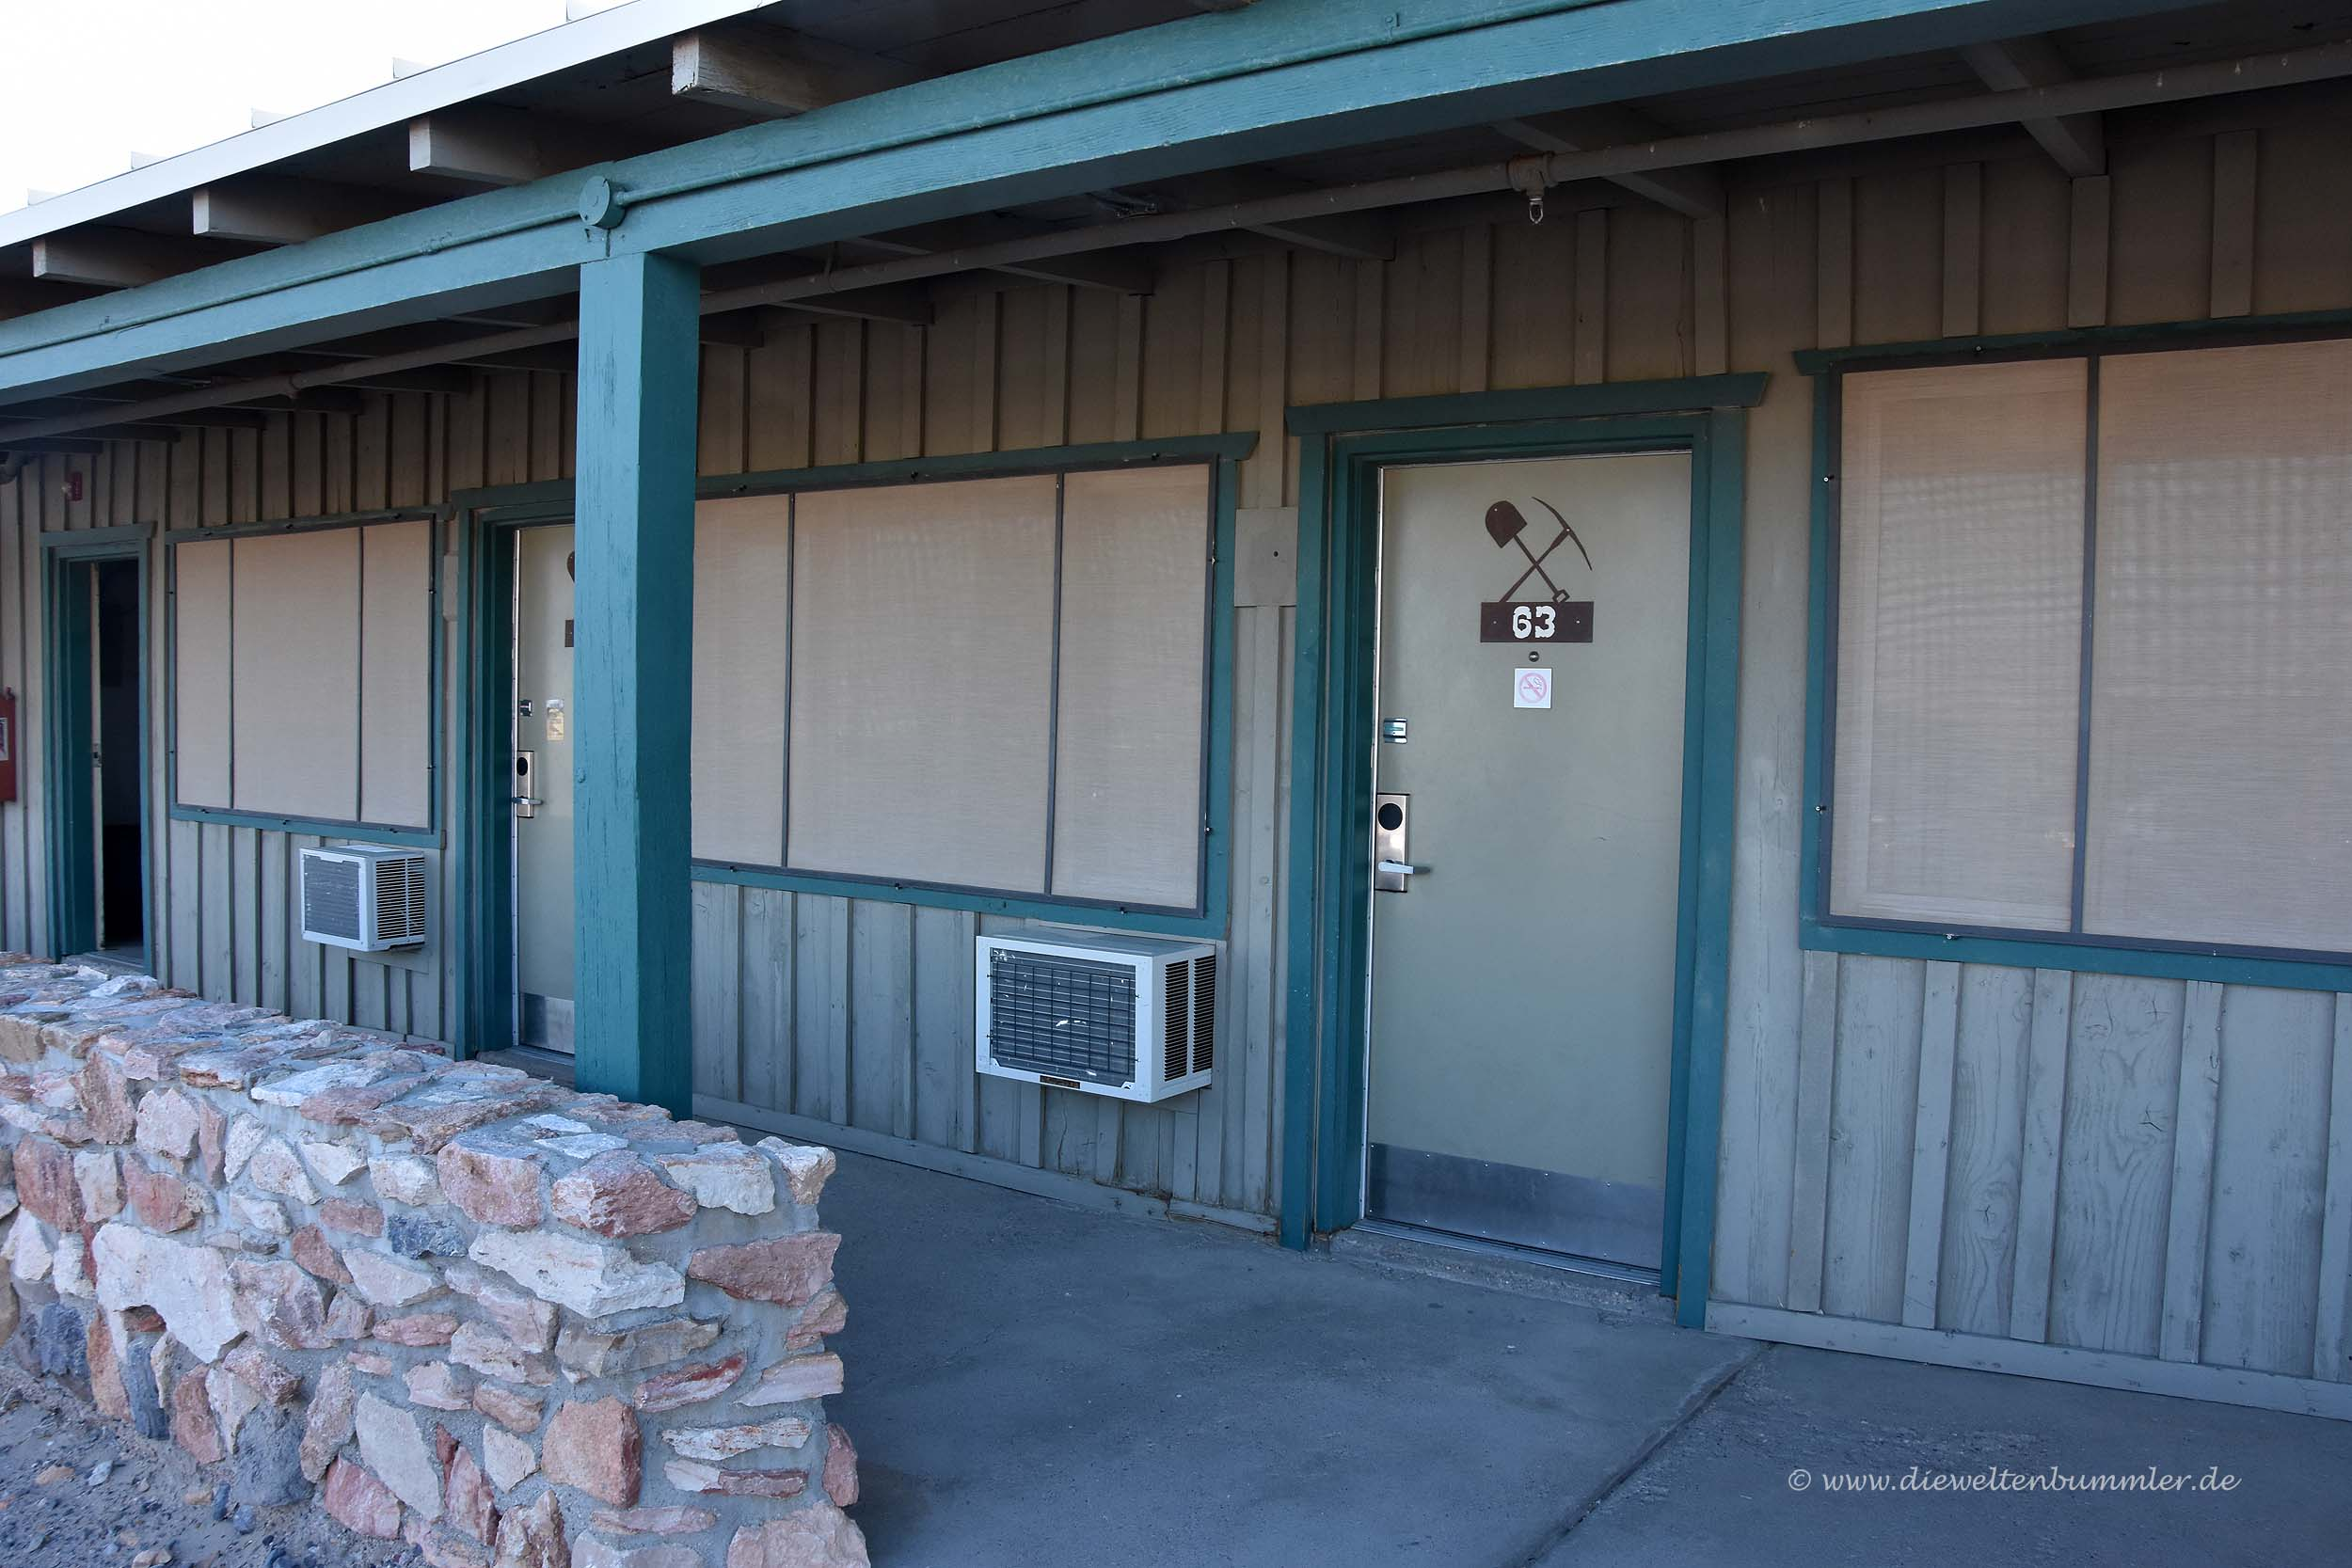 Motelzimmer im Death Valley Nationalpark